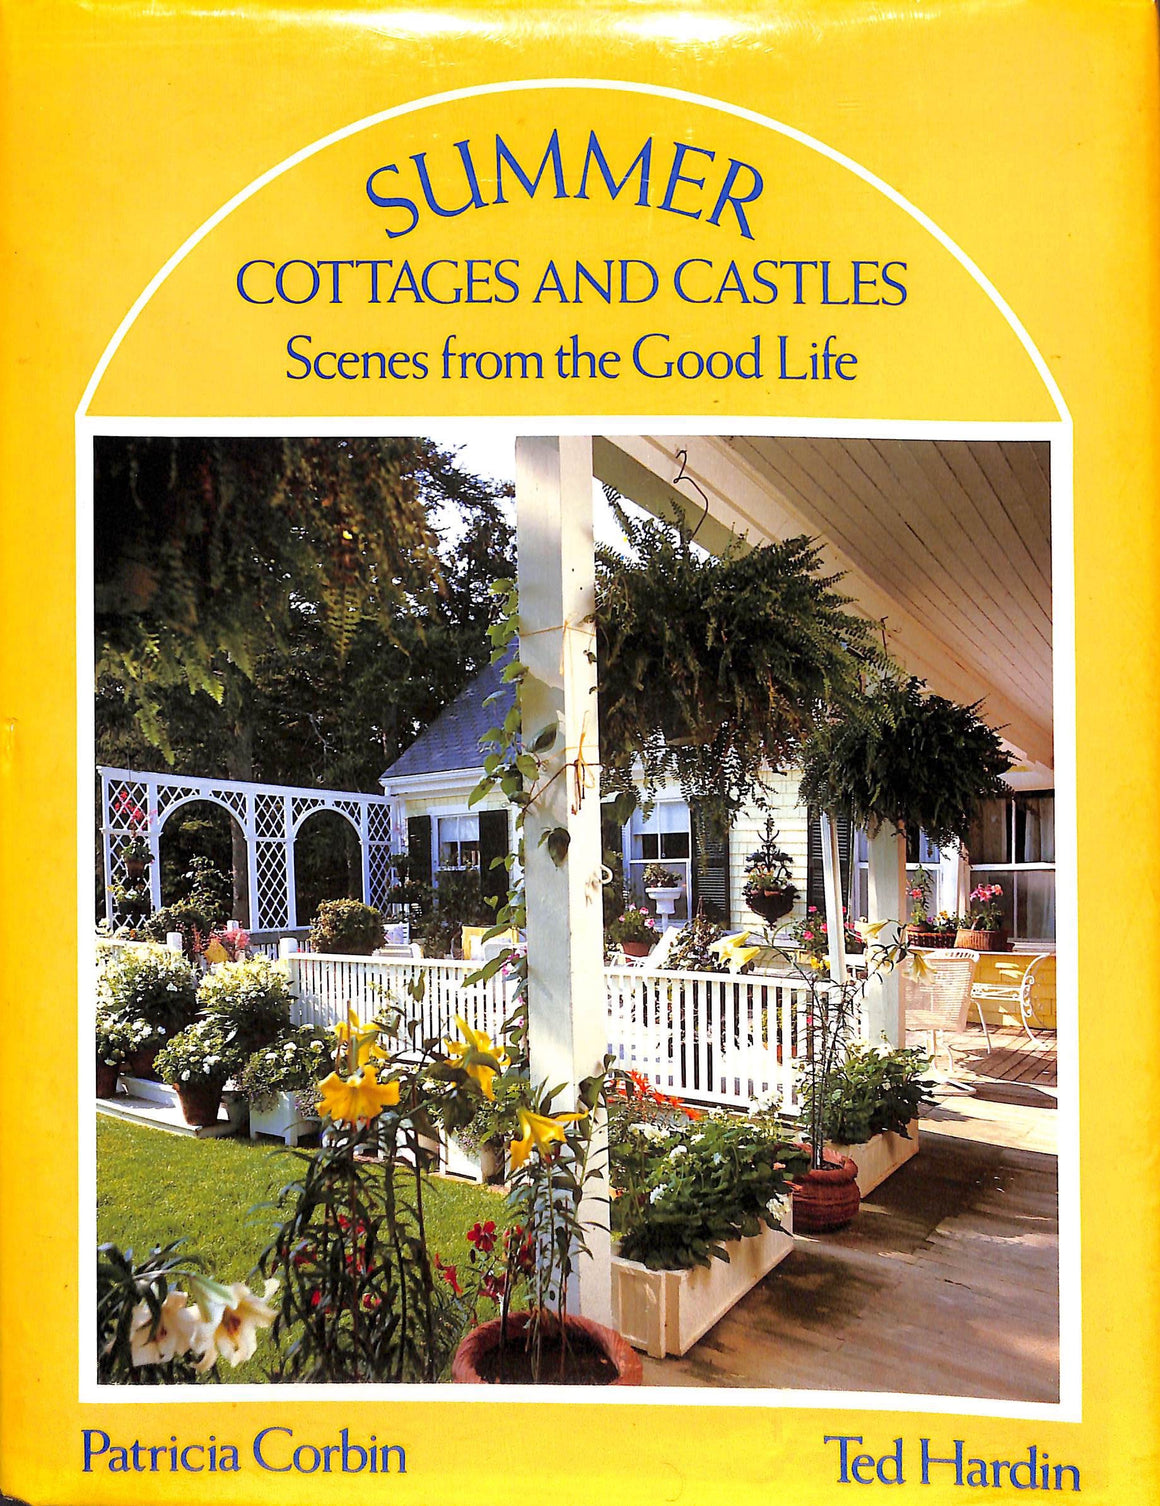 Summer Cottages and Castles: Scenes from the Good Life by Patricia Corbin & Ted Hardin